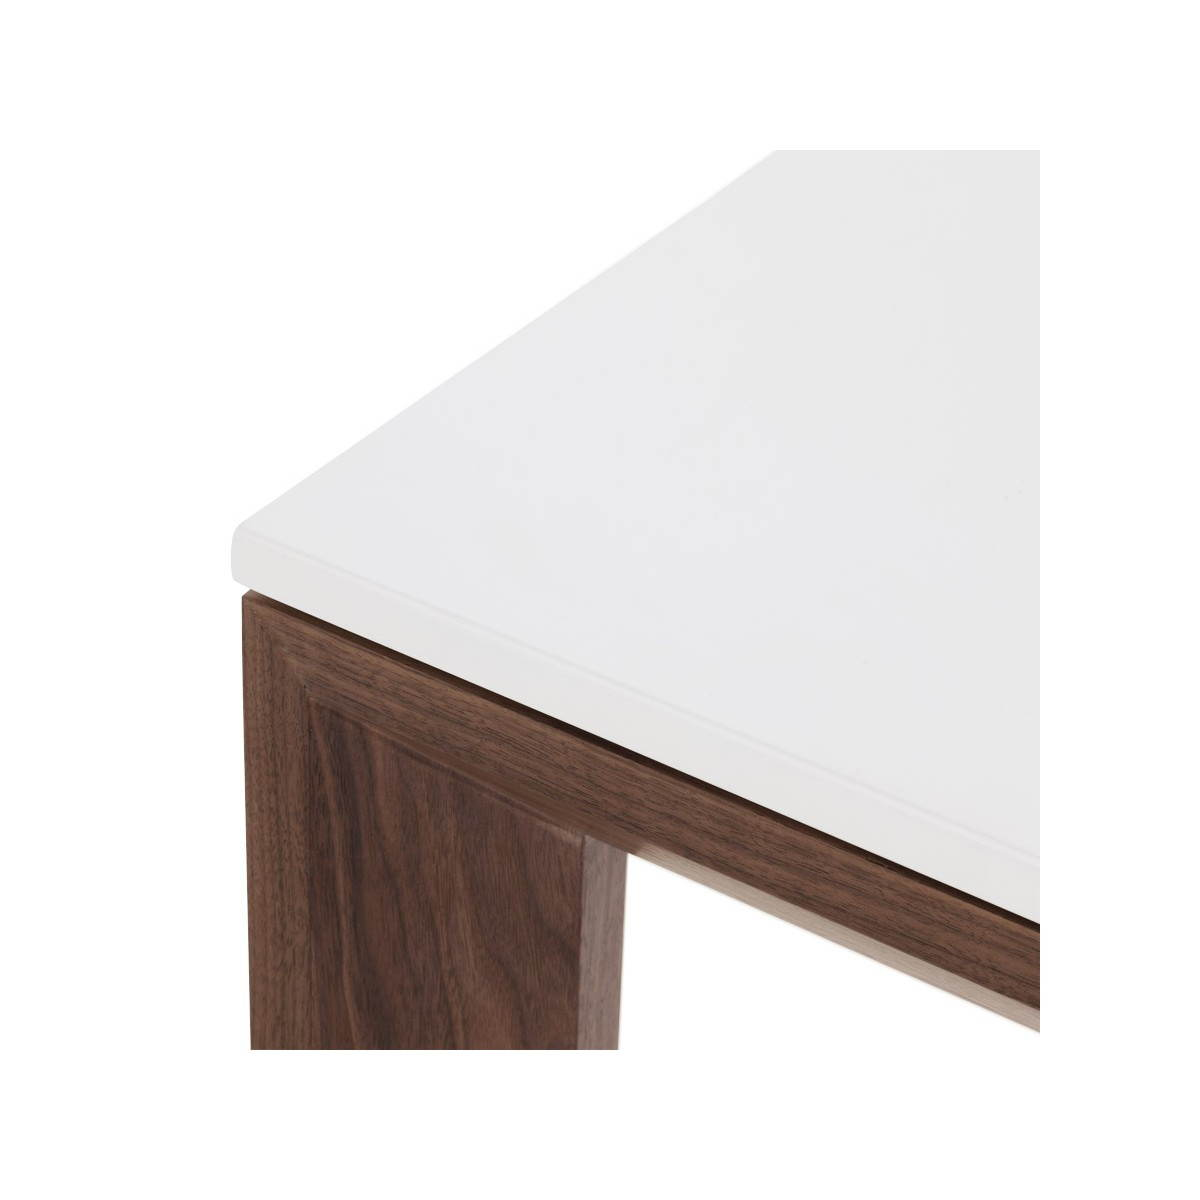 Table bois rallonge ikea Table rectangulaire avec rallonge